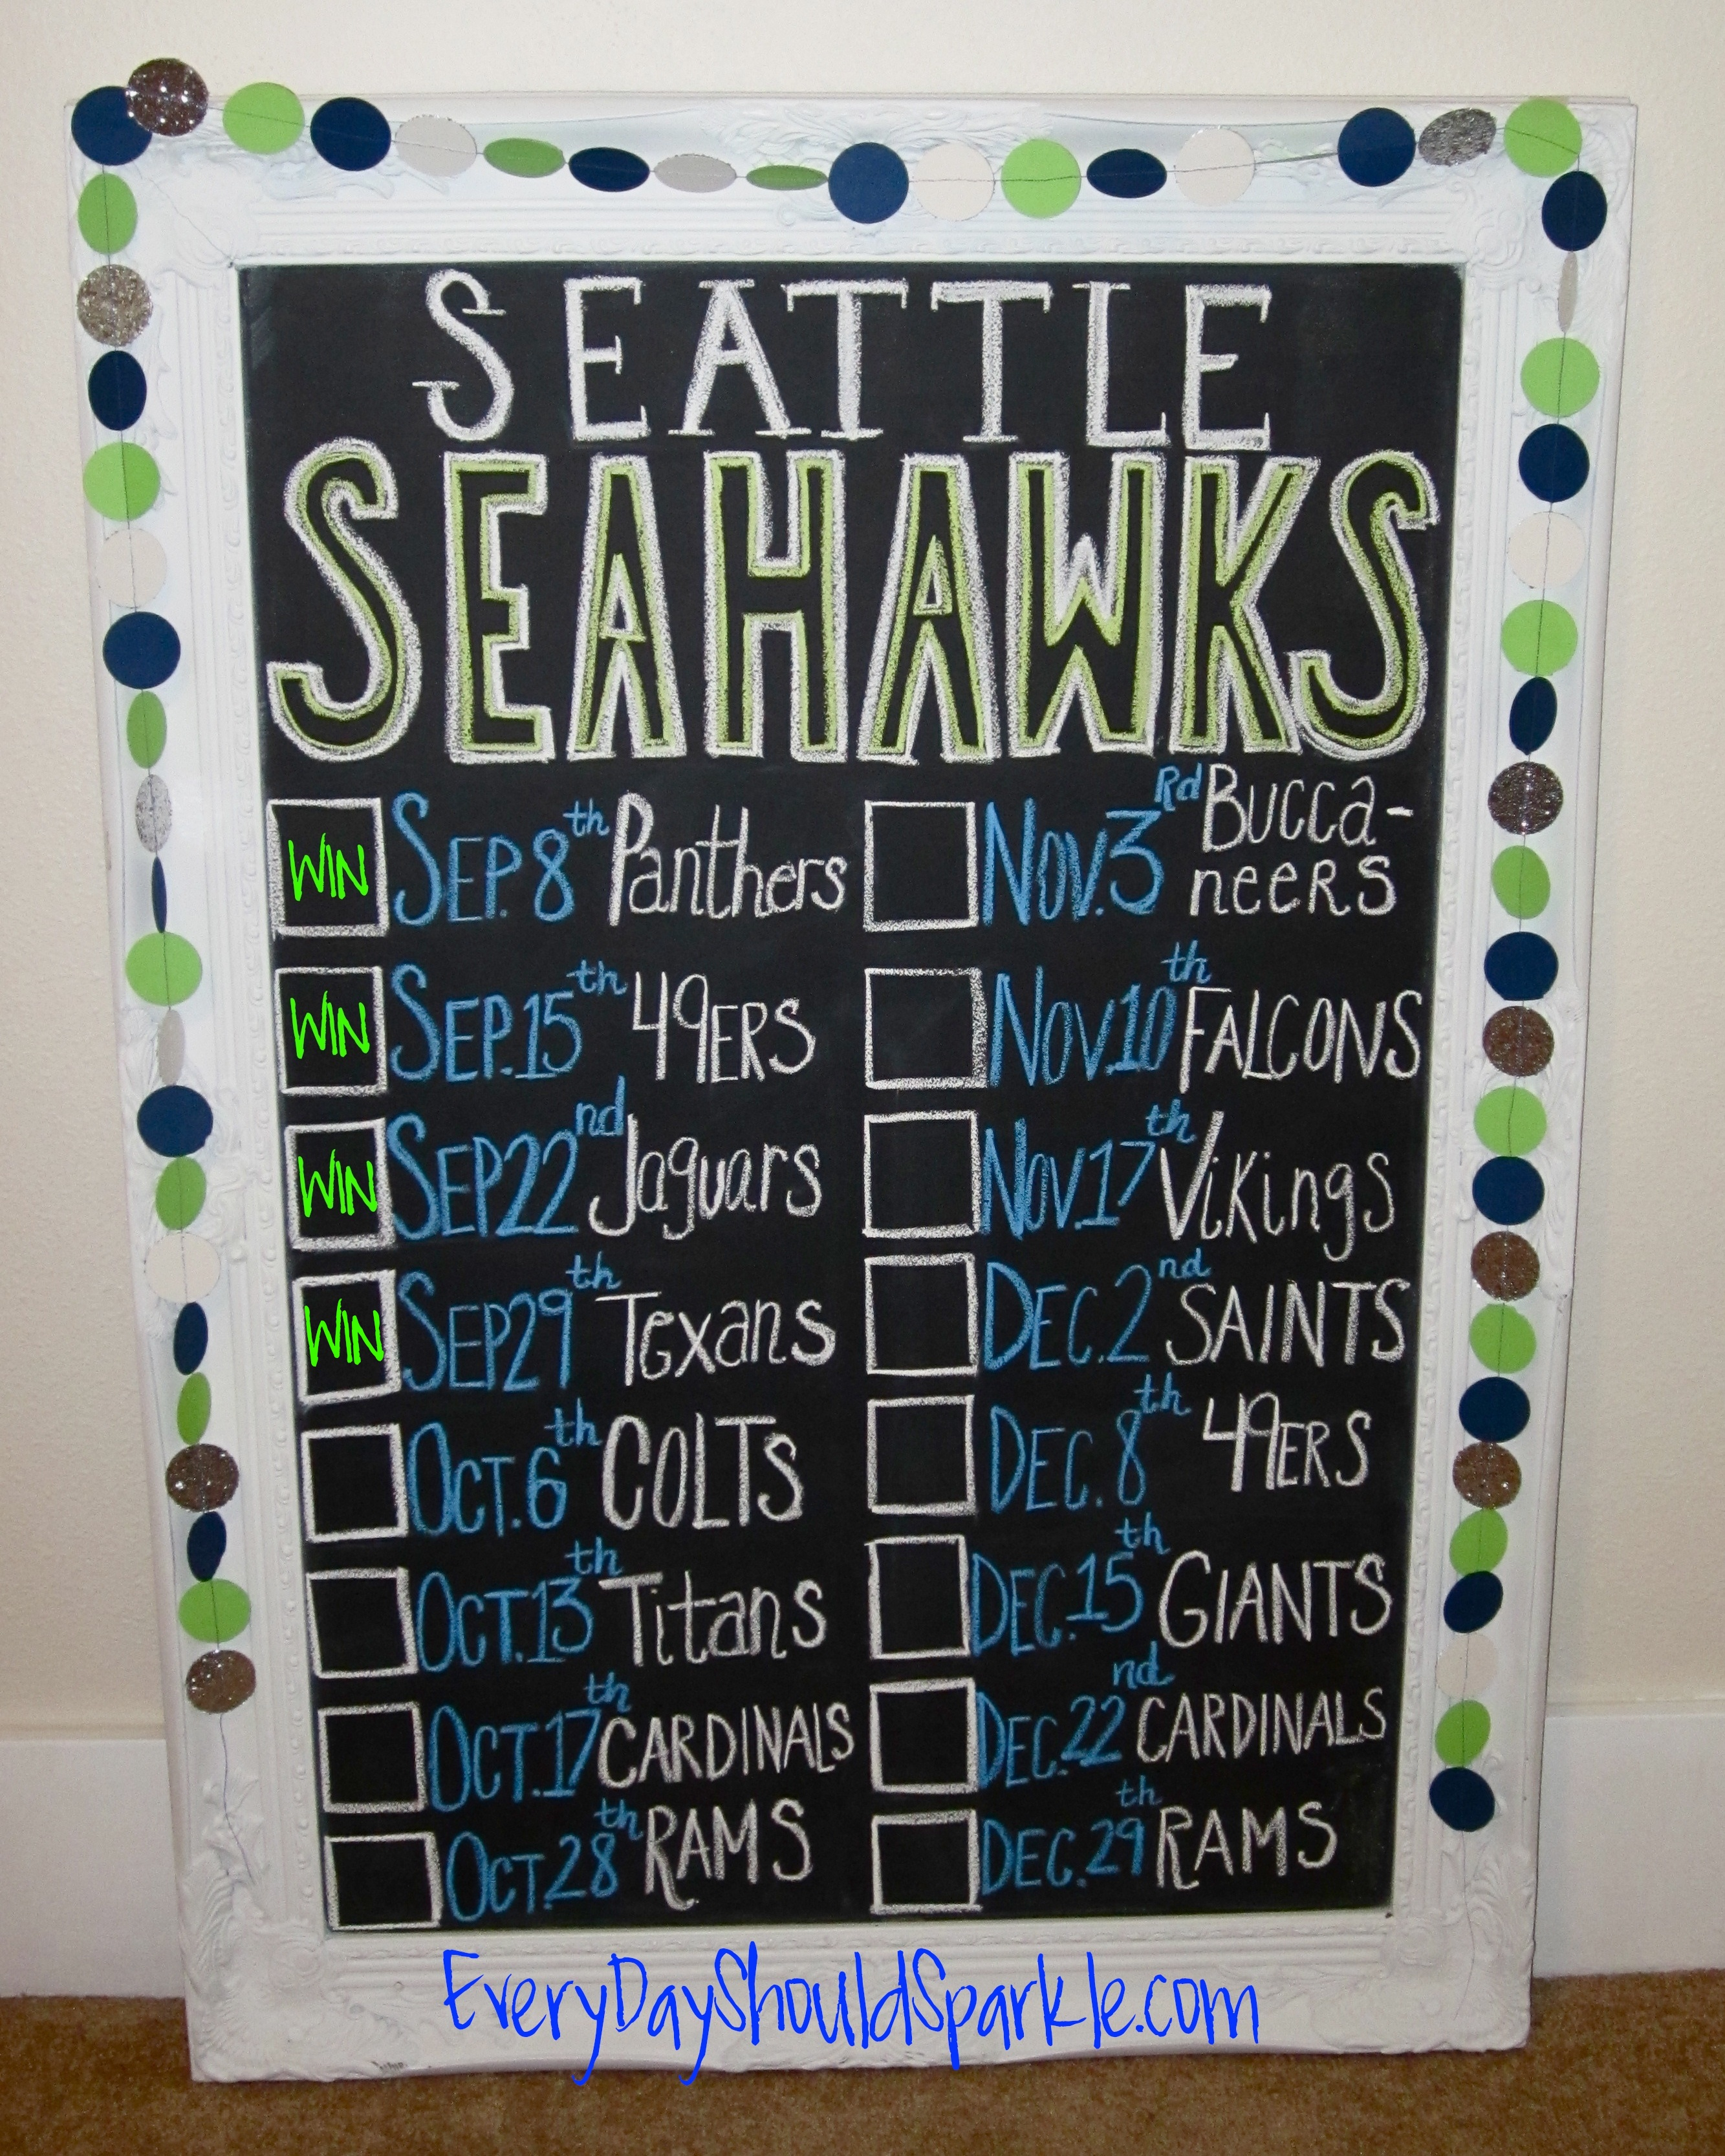 Seahawks Record #2